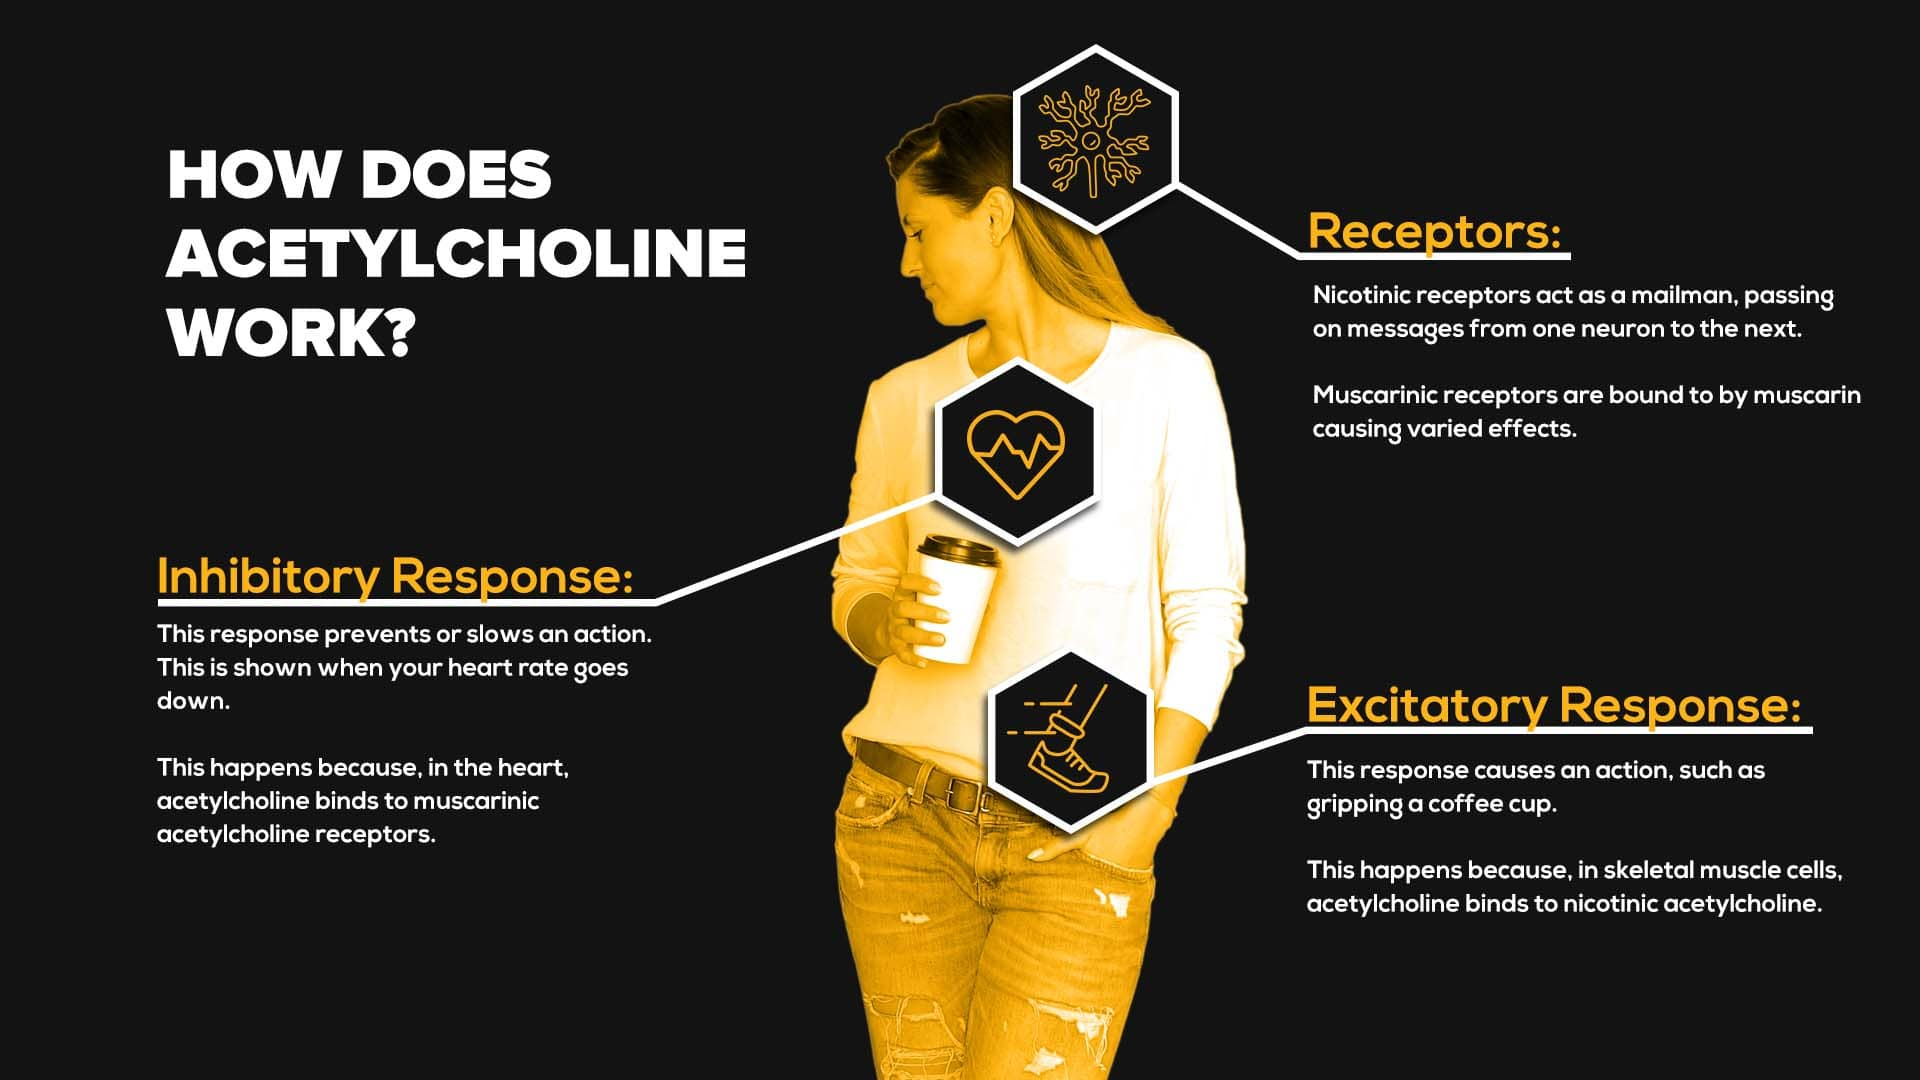 How Does Acetylcholine Work?